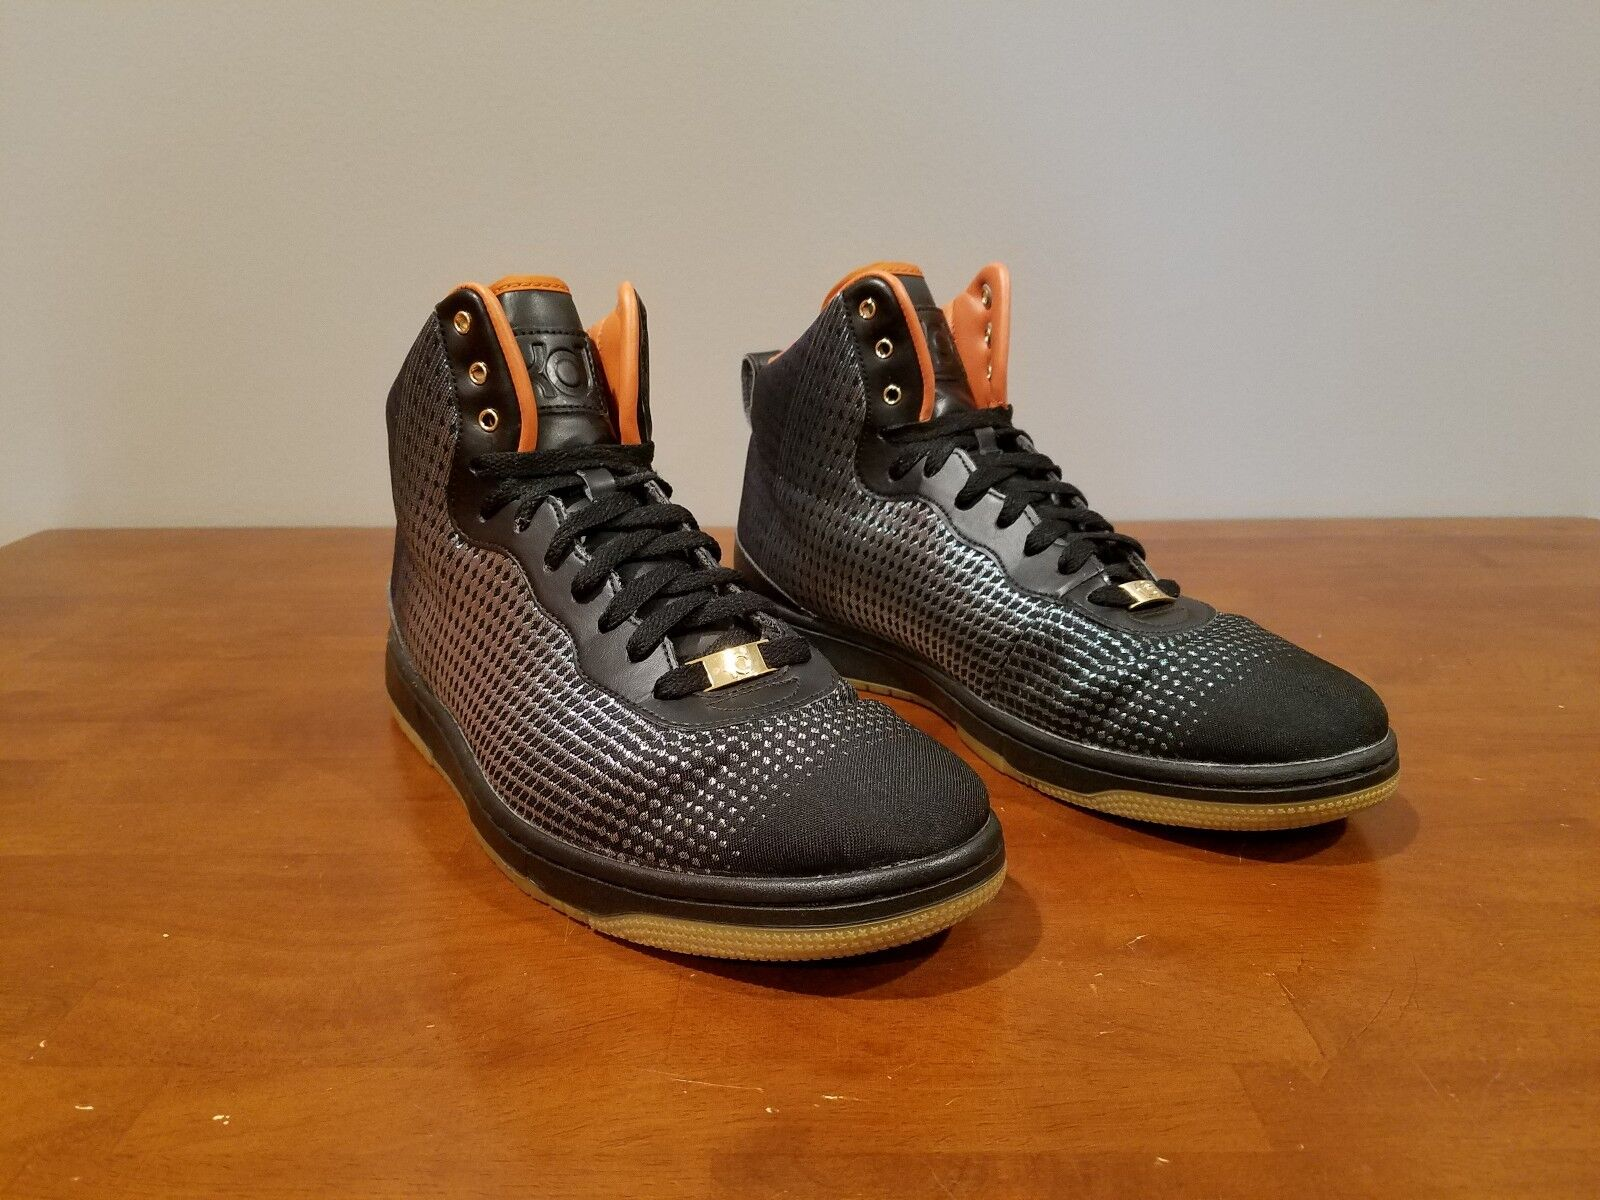 Nike KD VIII NSW Lifestyle Blk/MTLCGold Price reduction Men's Sz 11 Price reduction